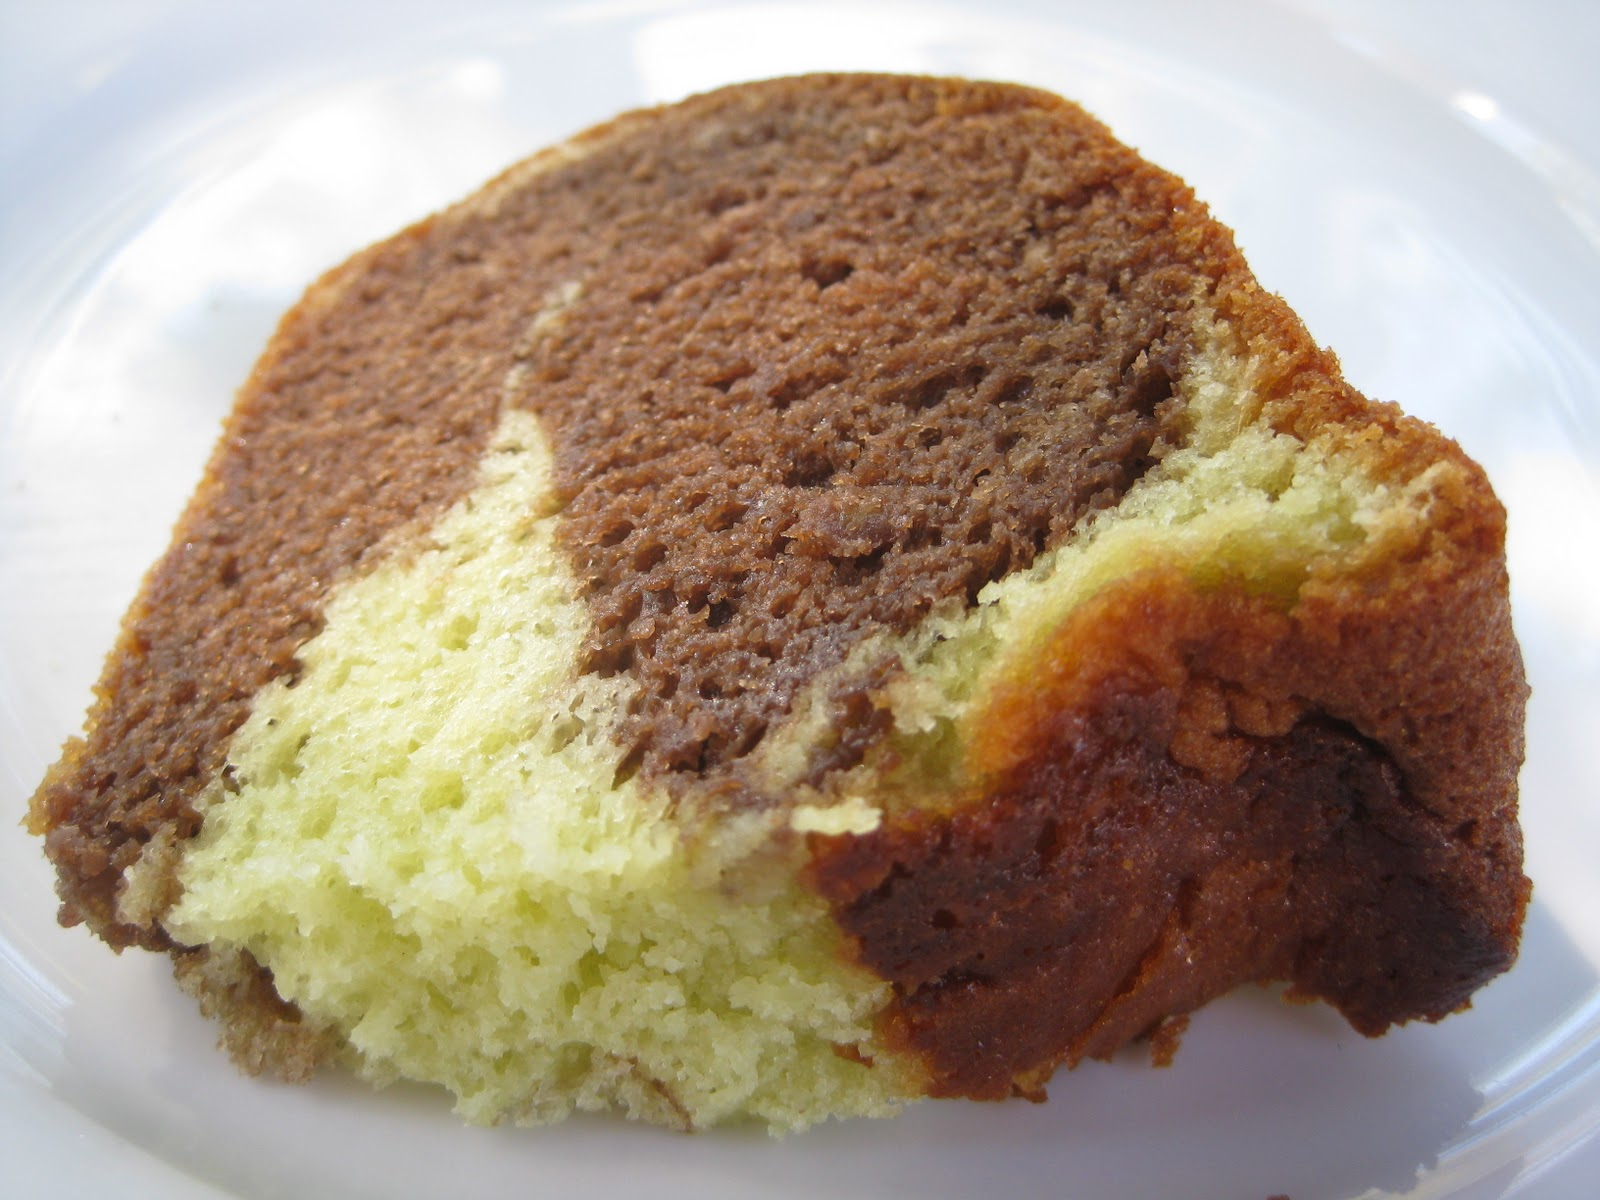 Heidi's Recipes: Chocolate Pistachio Bundt Cake Recipe